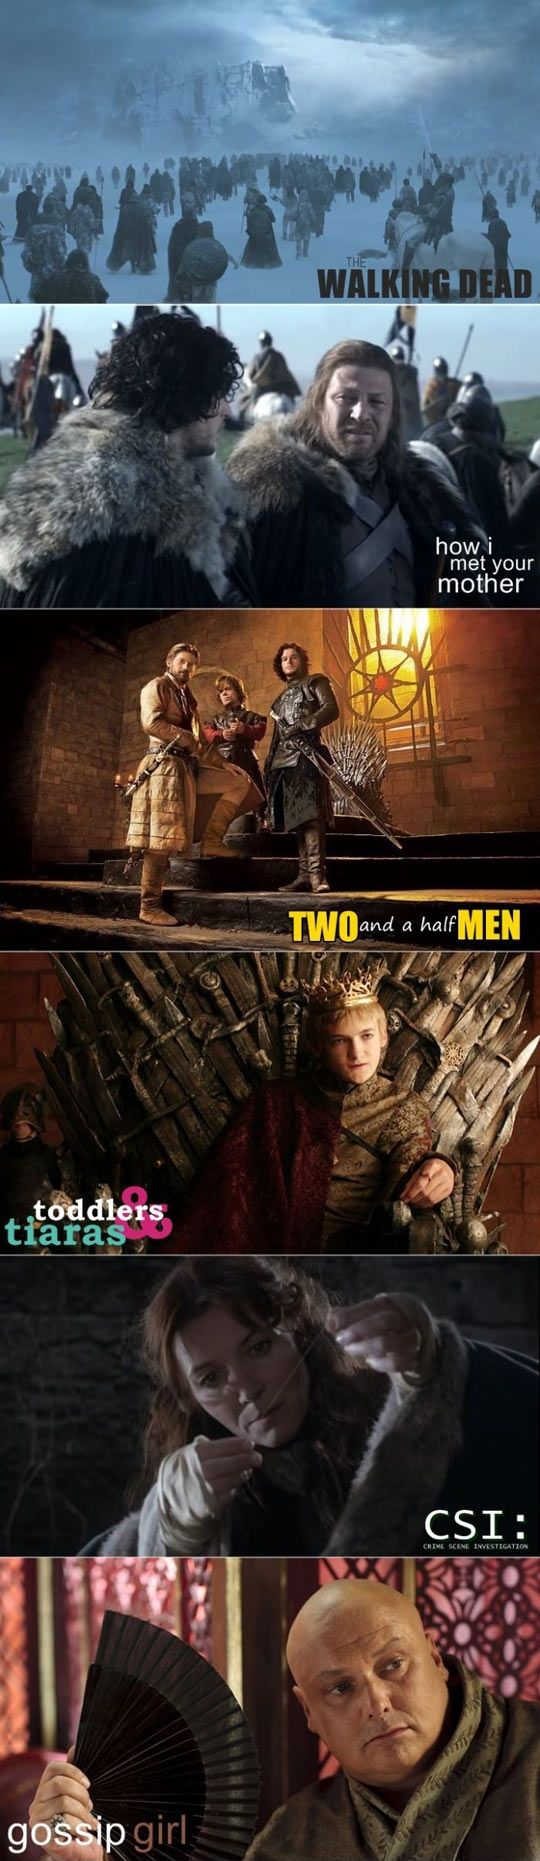 Game of Thrones is ALL OF THE SHOWS.